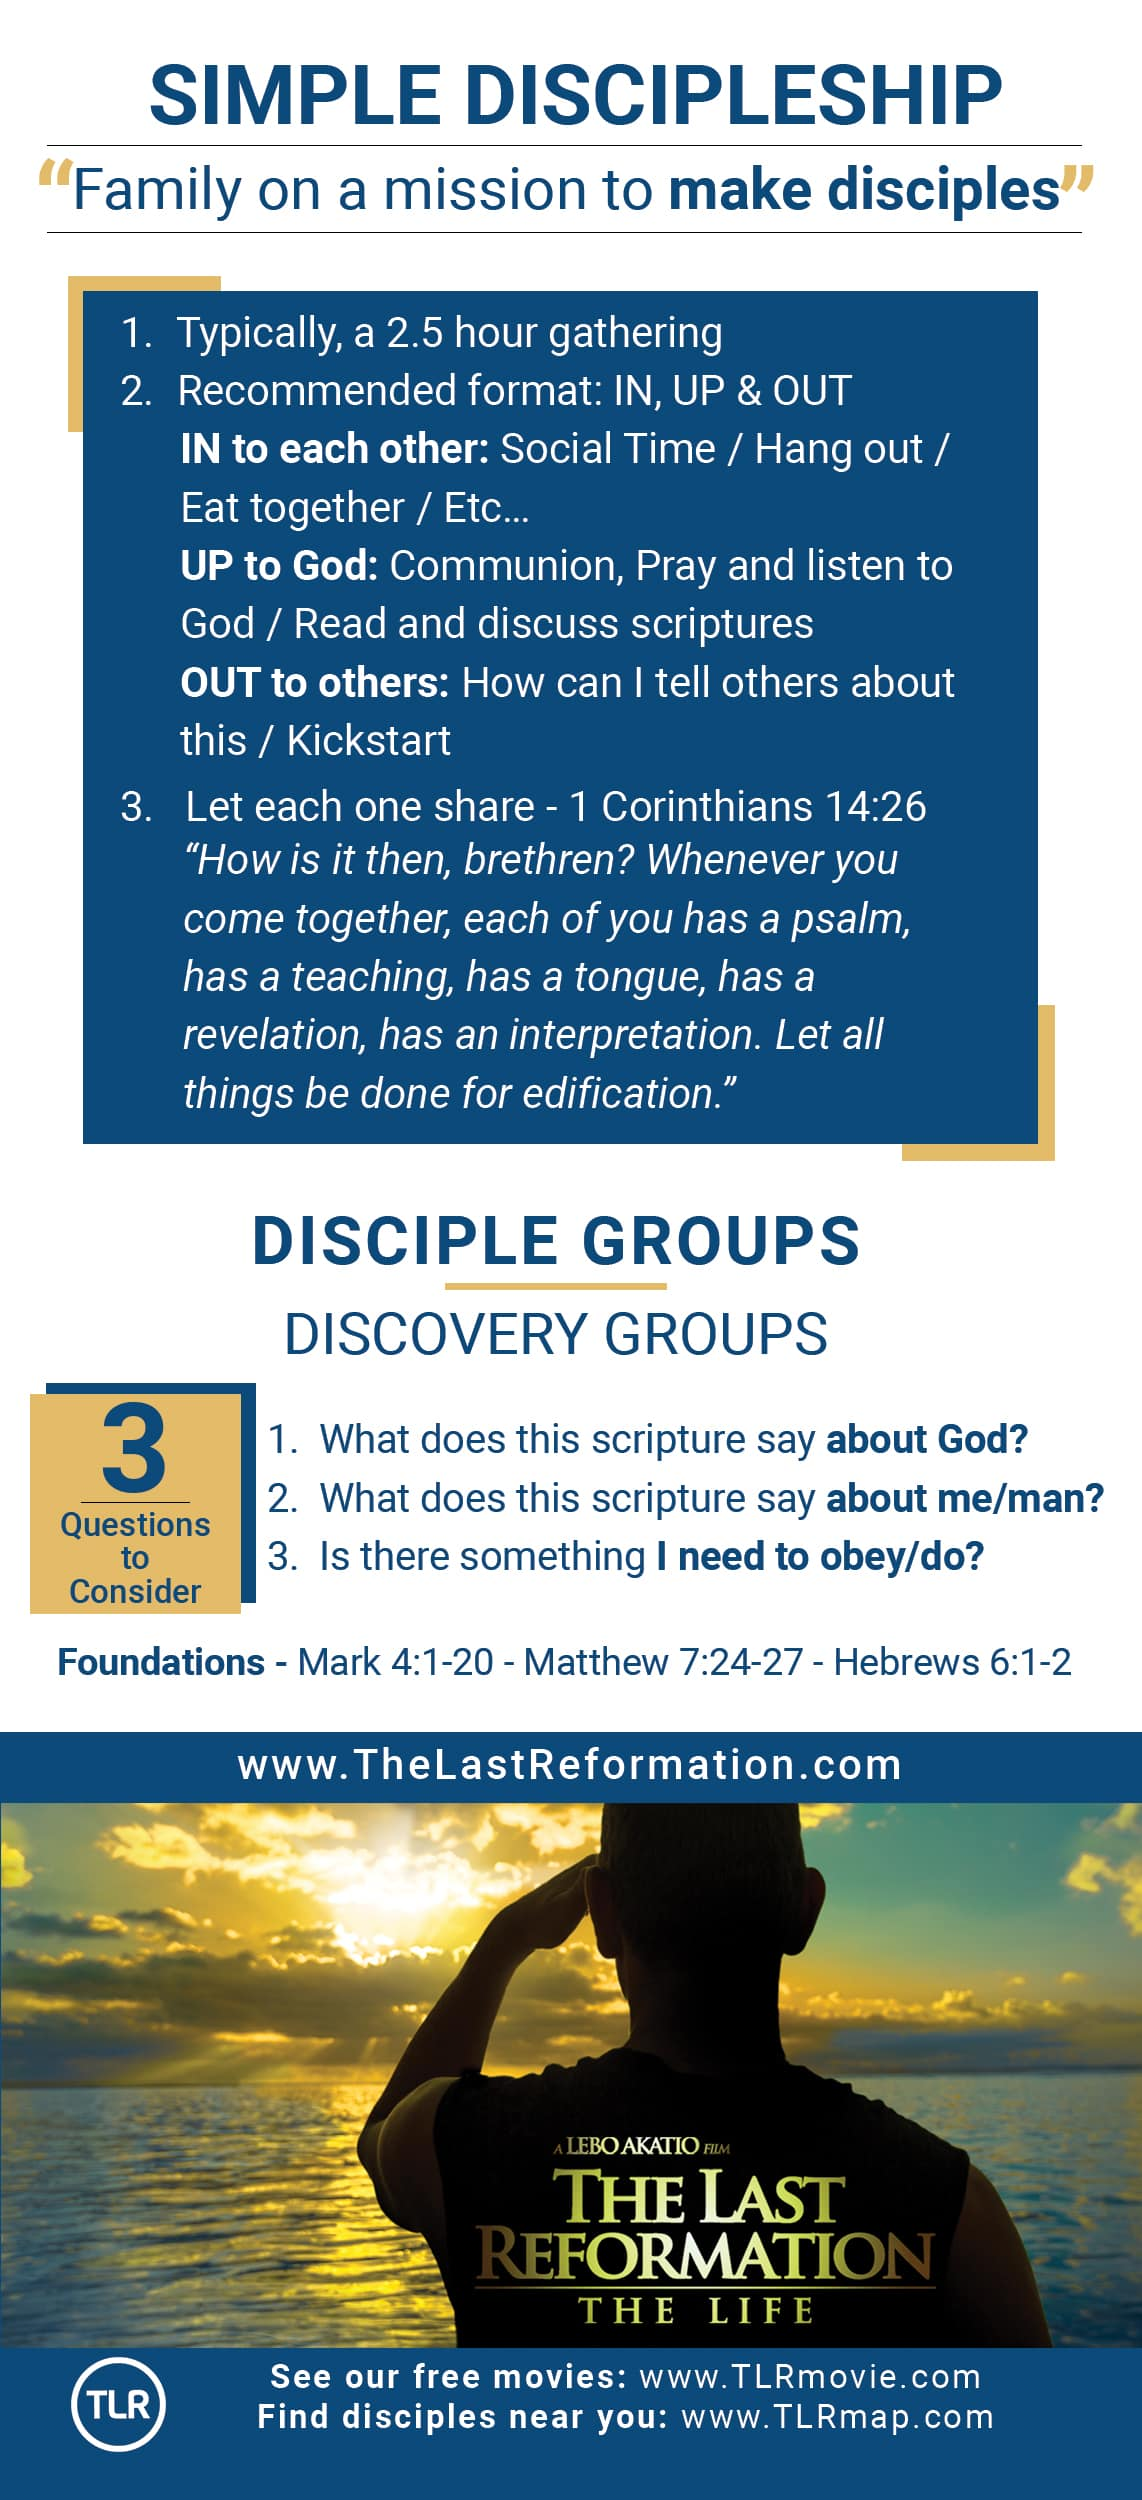 Simple Discipleship Card Front version 1.0